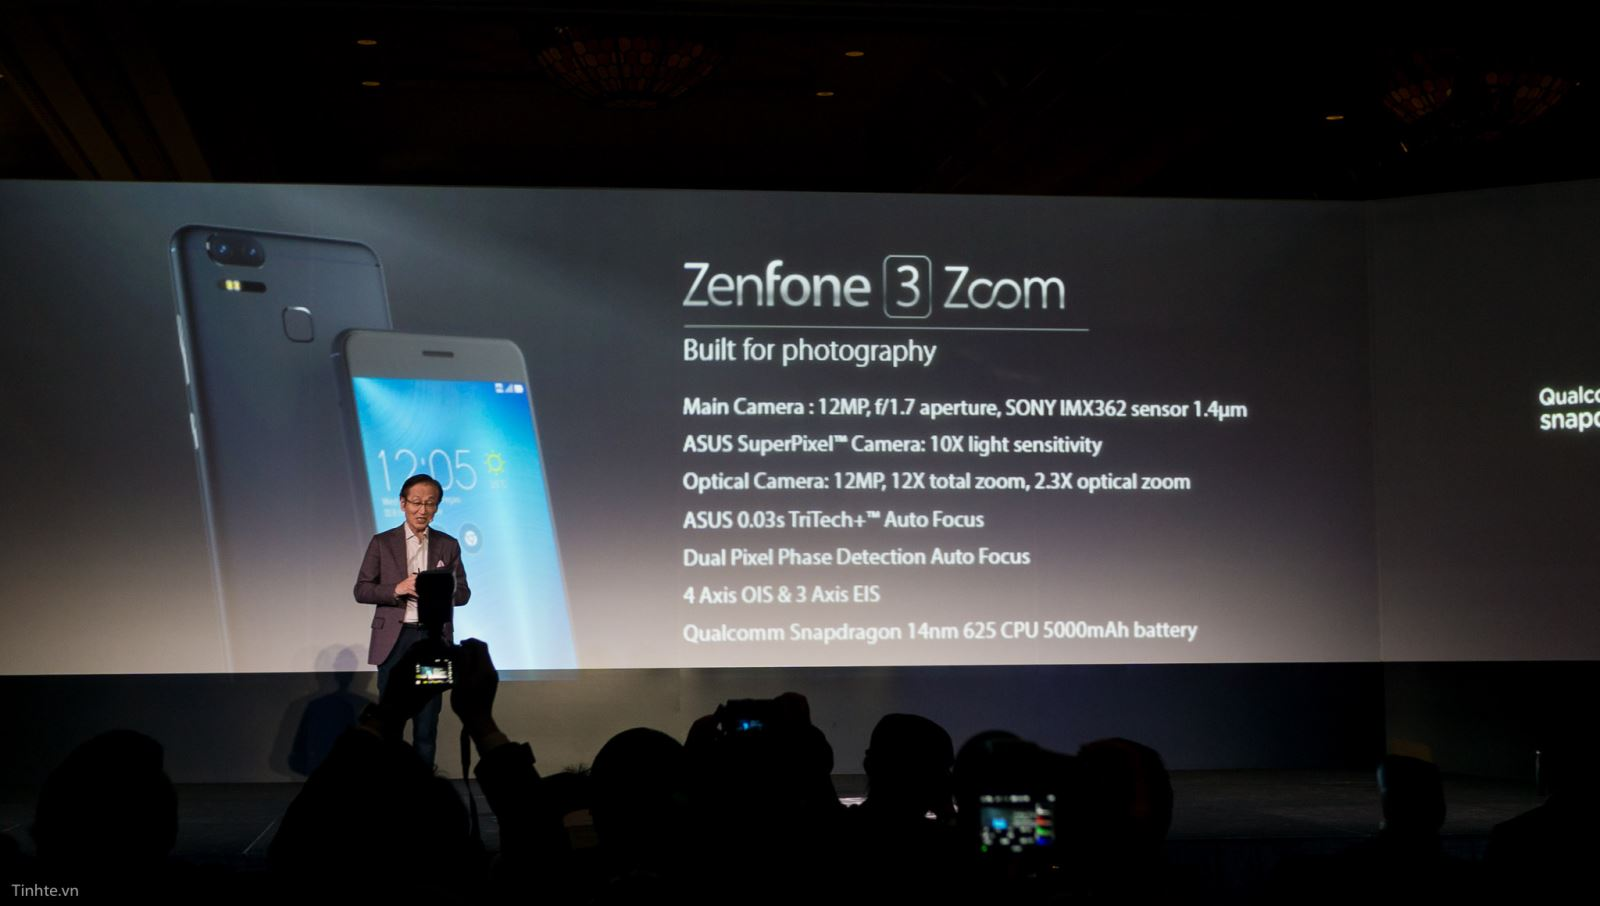 Cập nhật Android Nougat cho Asus Zenfone 3 Zoom